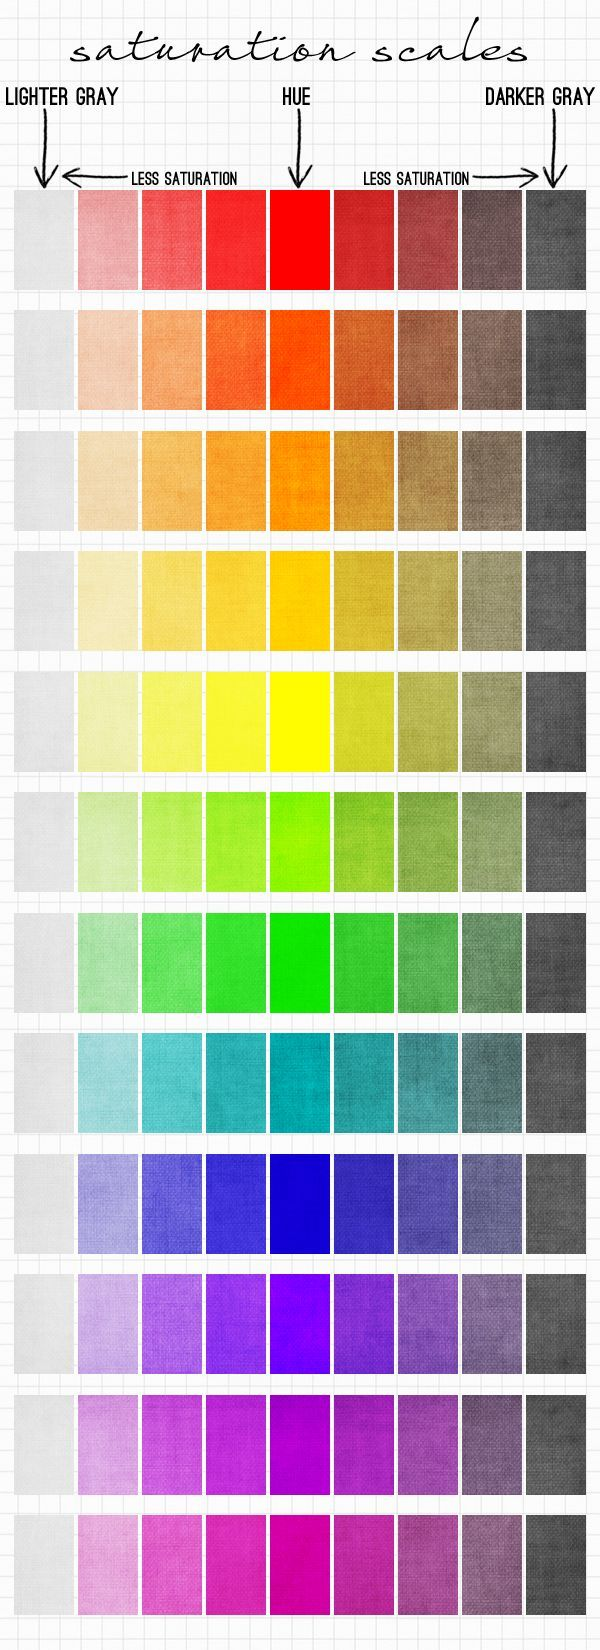 Basically everything youve ever wanted to know about color theory basically everything youve ever wanted to know about color theory nvjuhfo Images